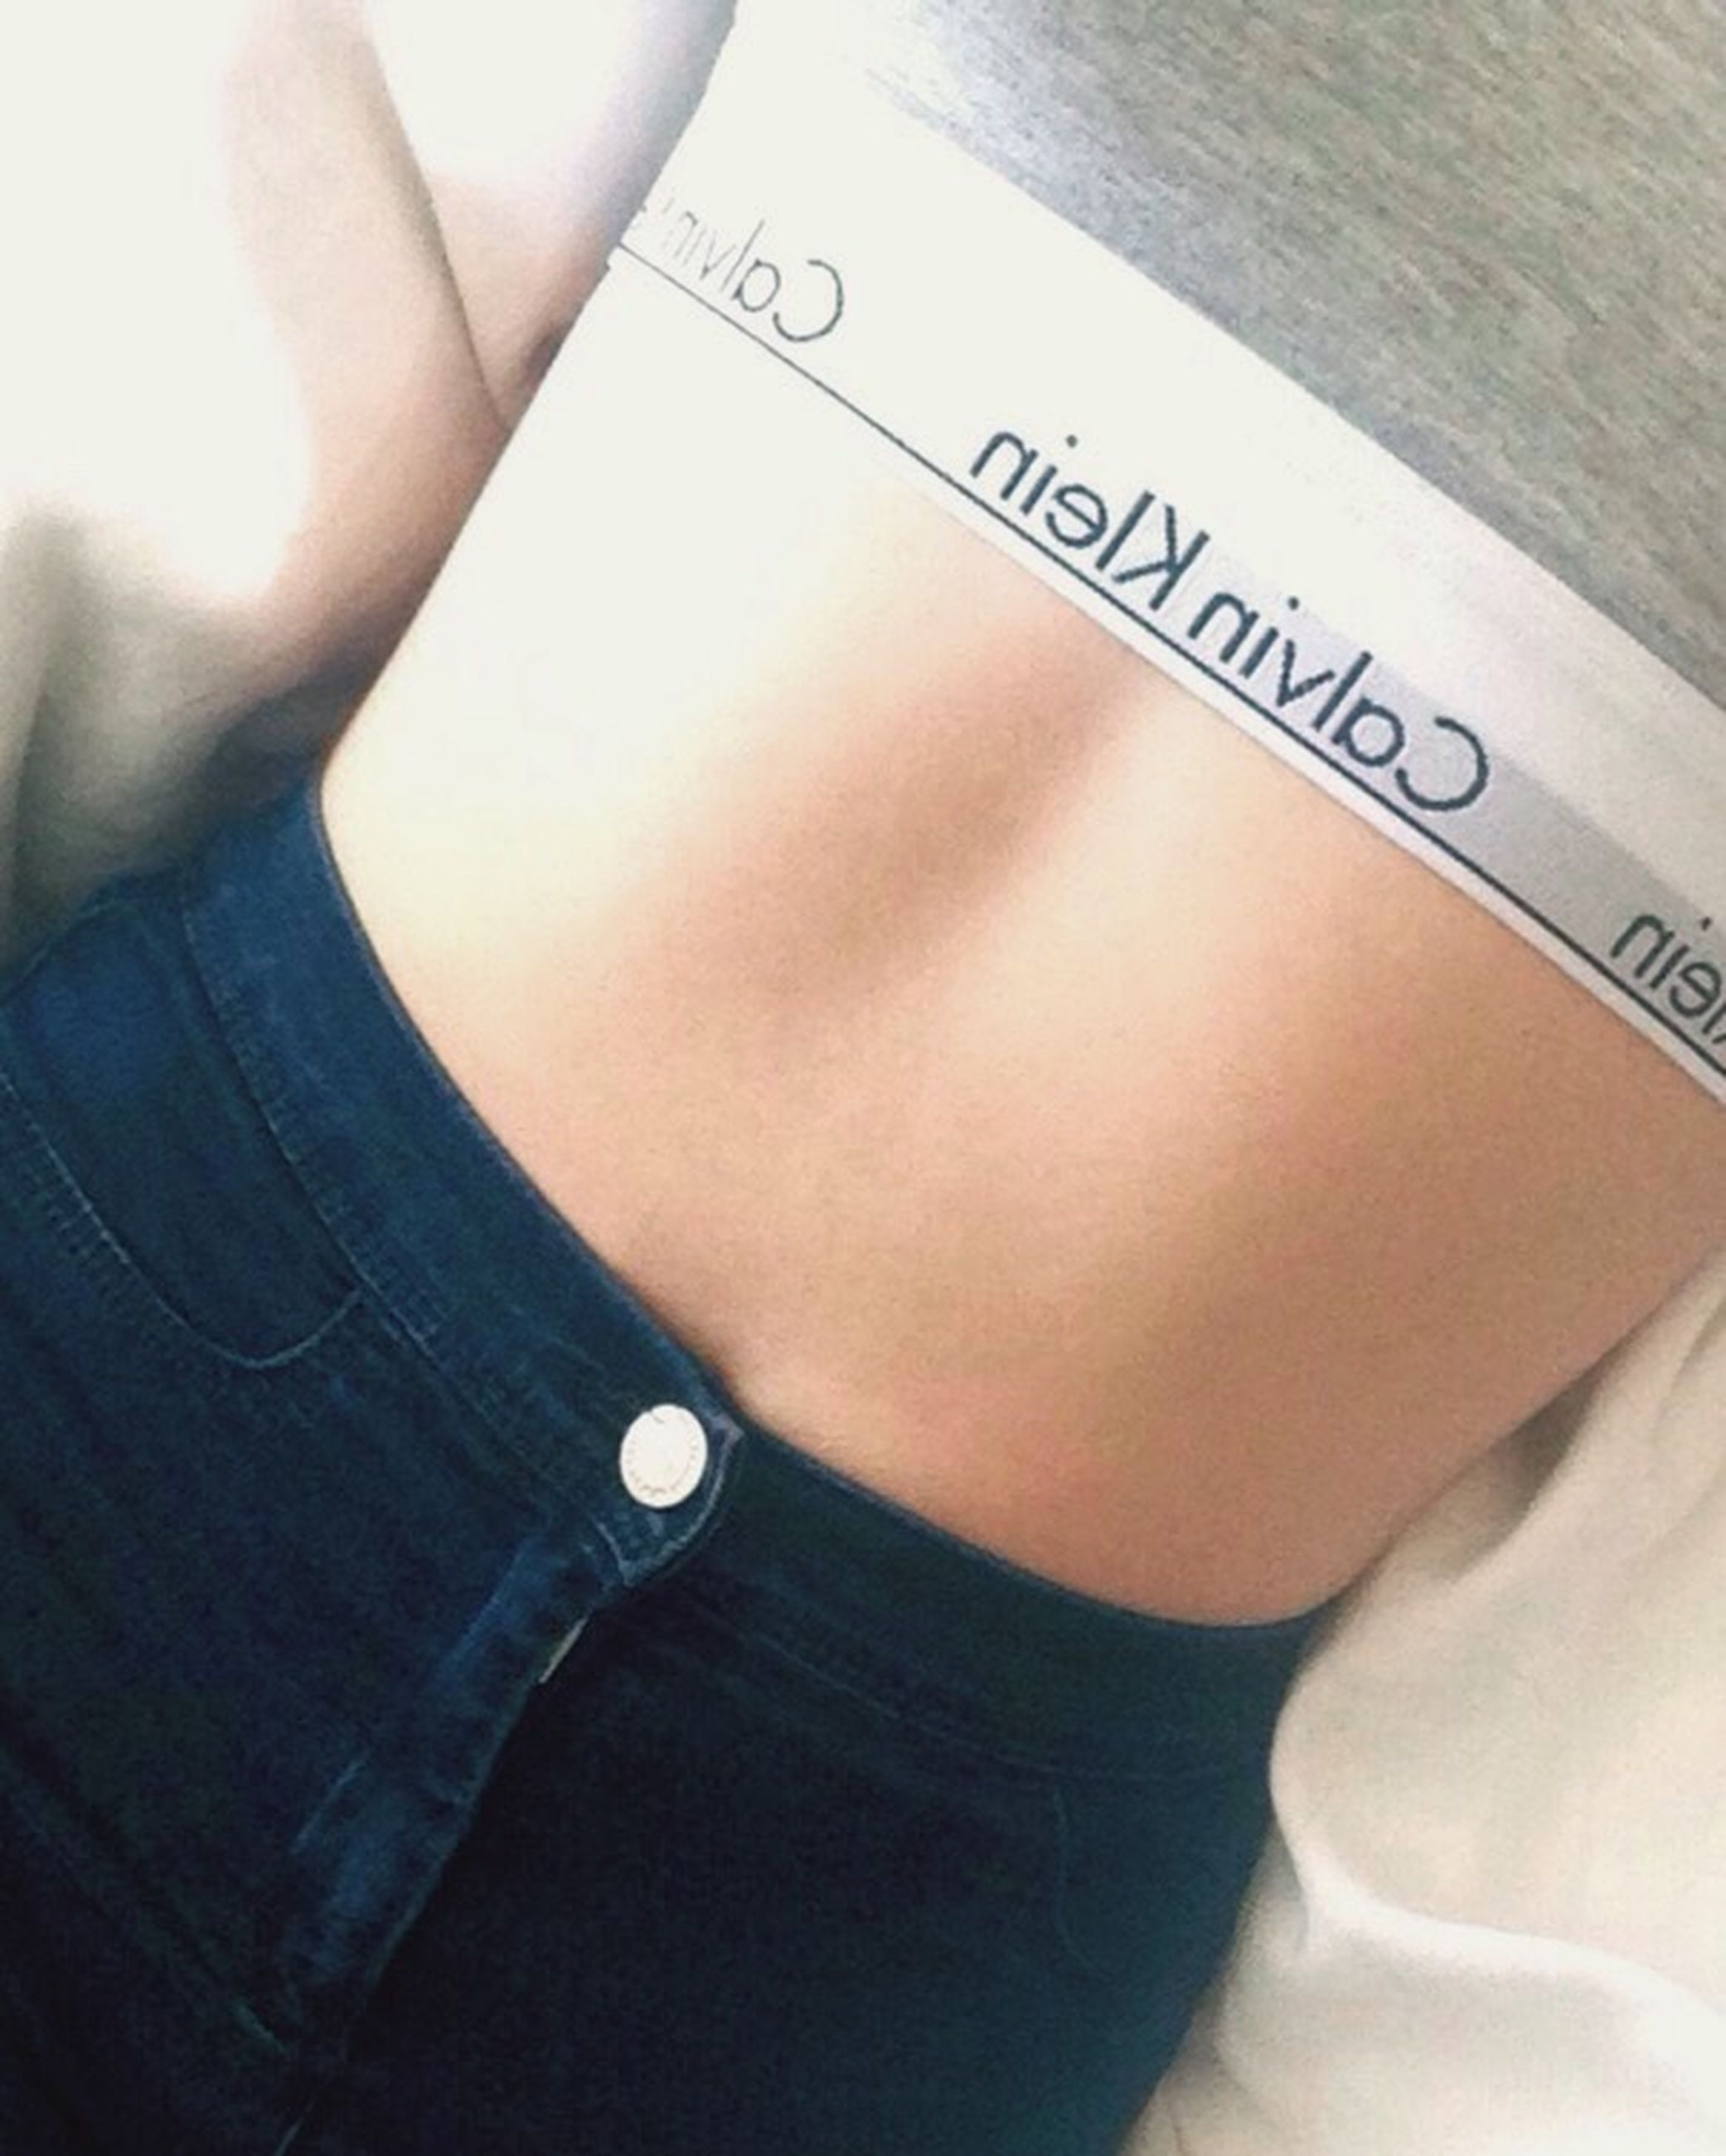 indoors, lifestyles, person, communication, text, leisure activity, part of, holding, western script, human finger, close-up, men, high angle view, cropped, midsection, unrecognizable person